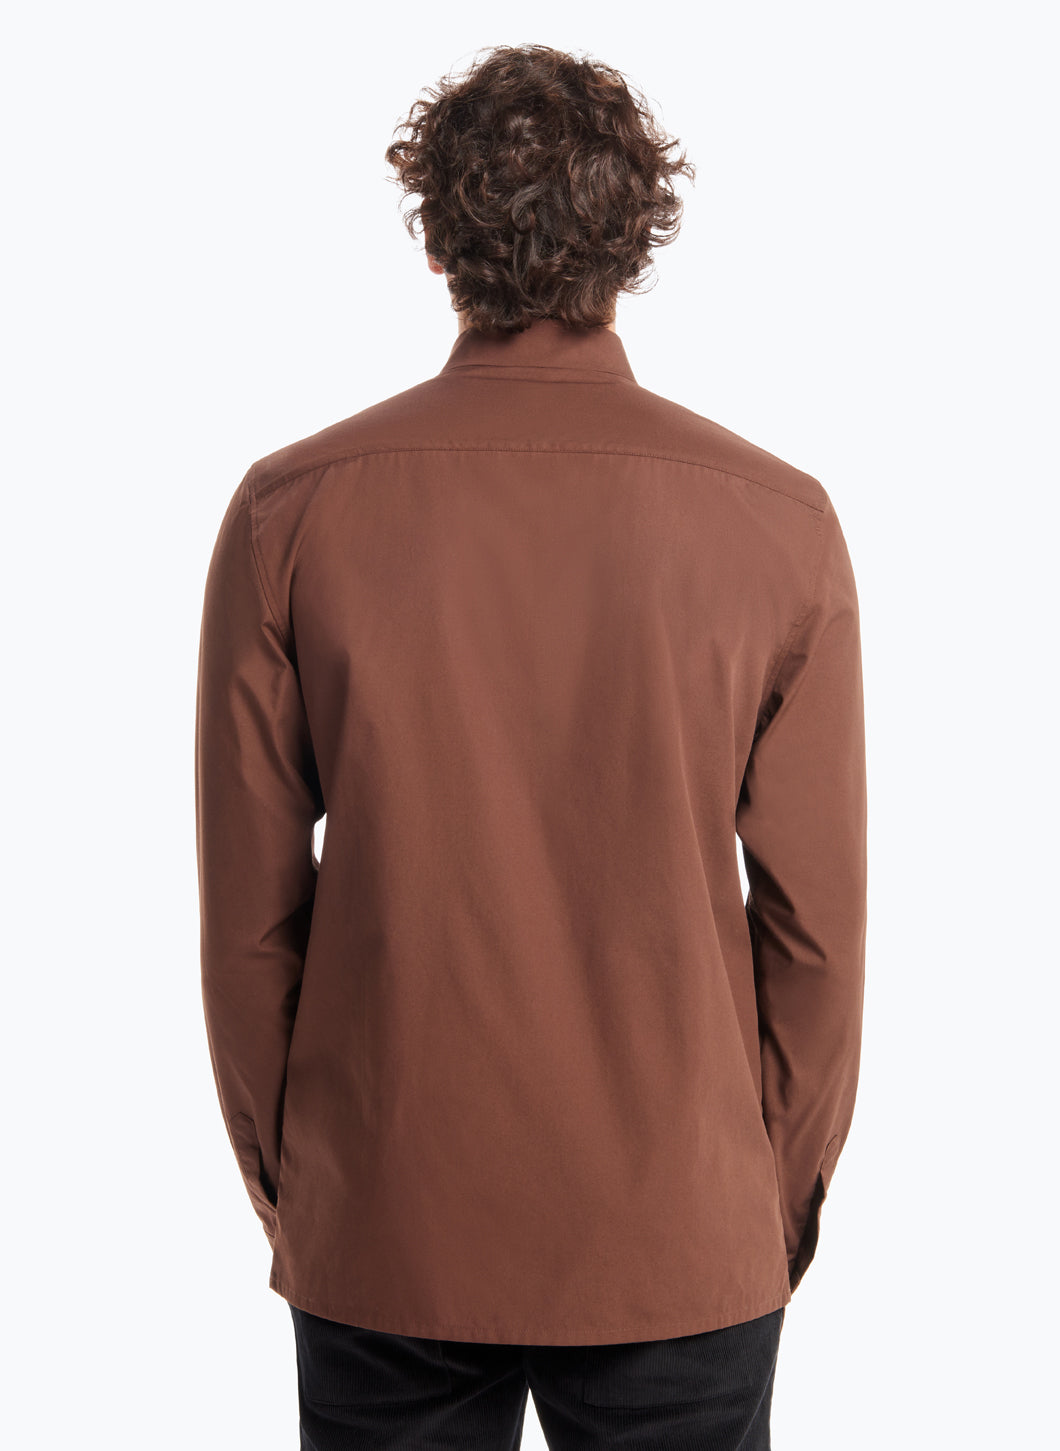 Origami Collar Shirt in Chocolate Poplin